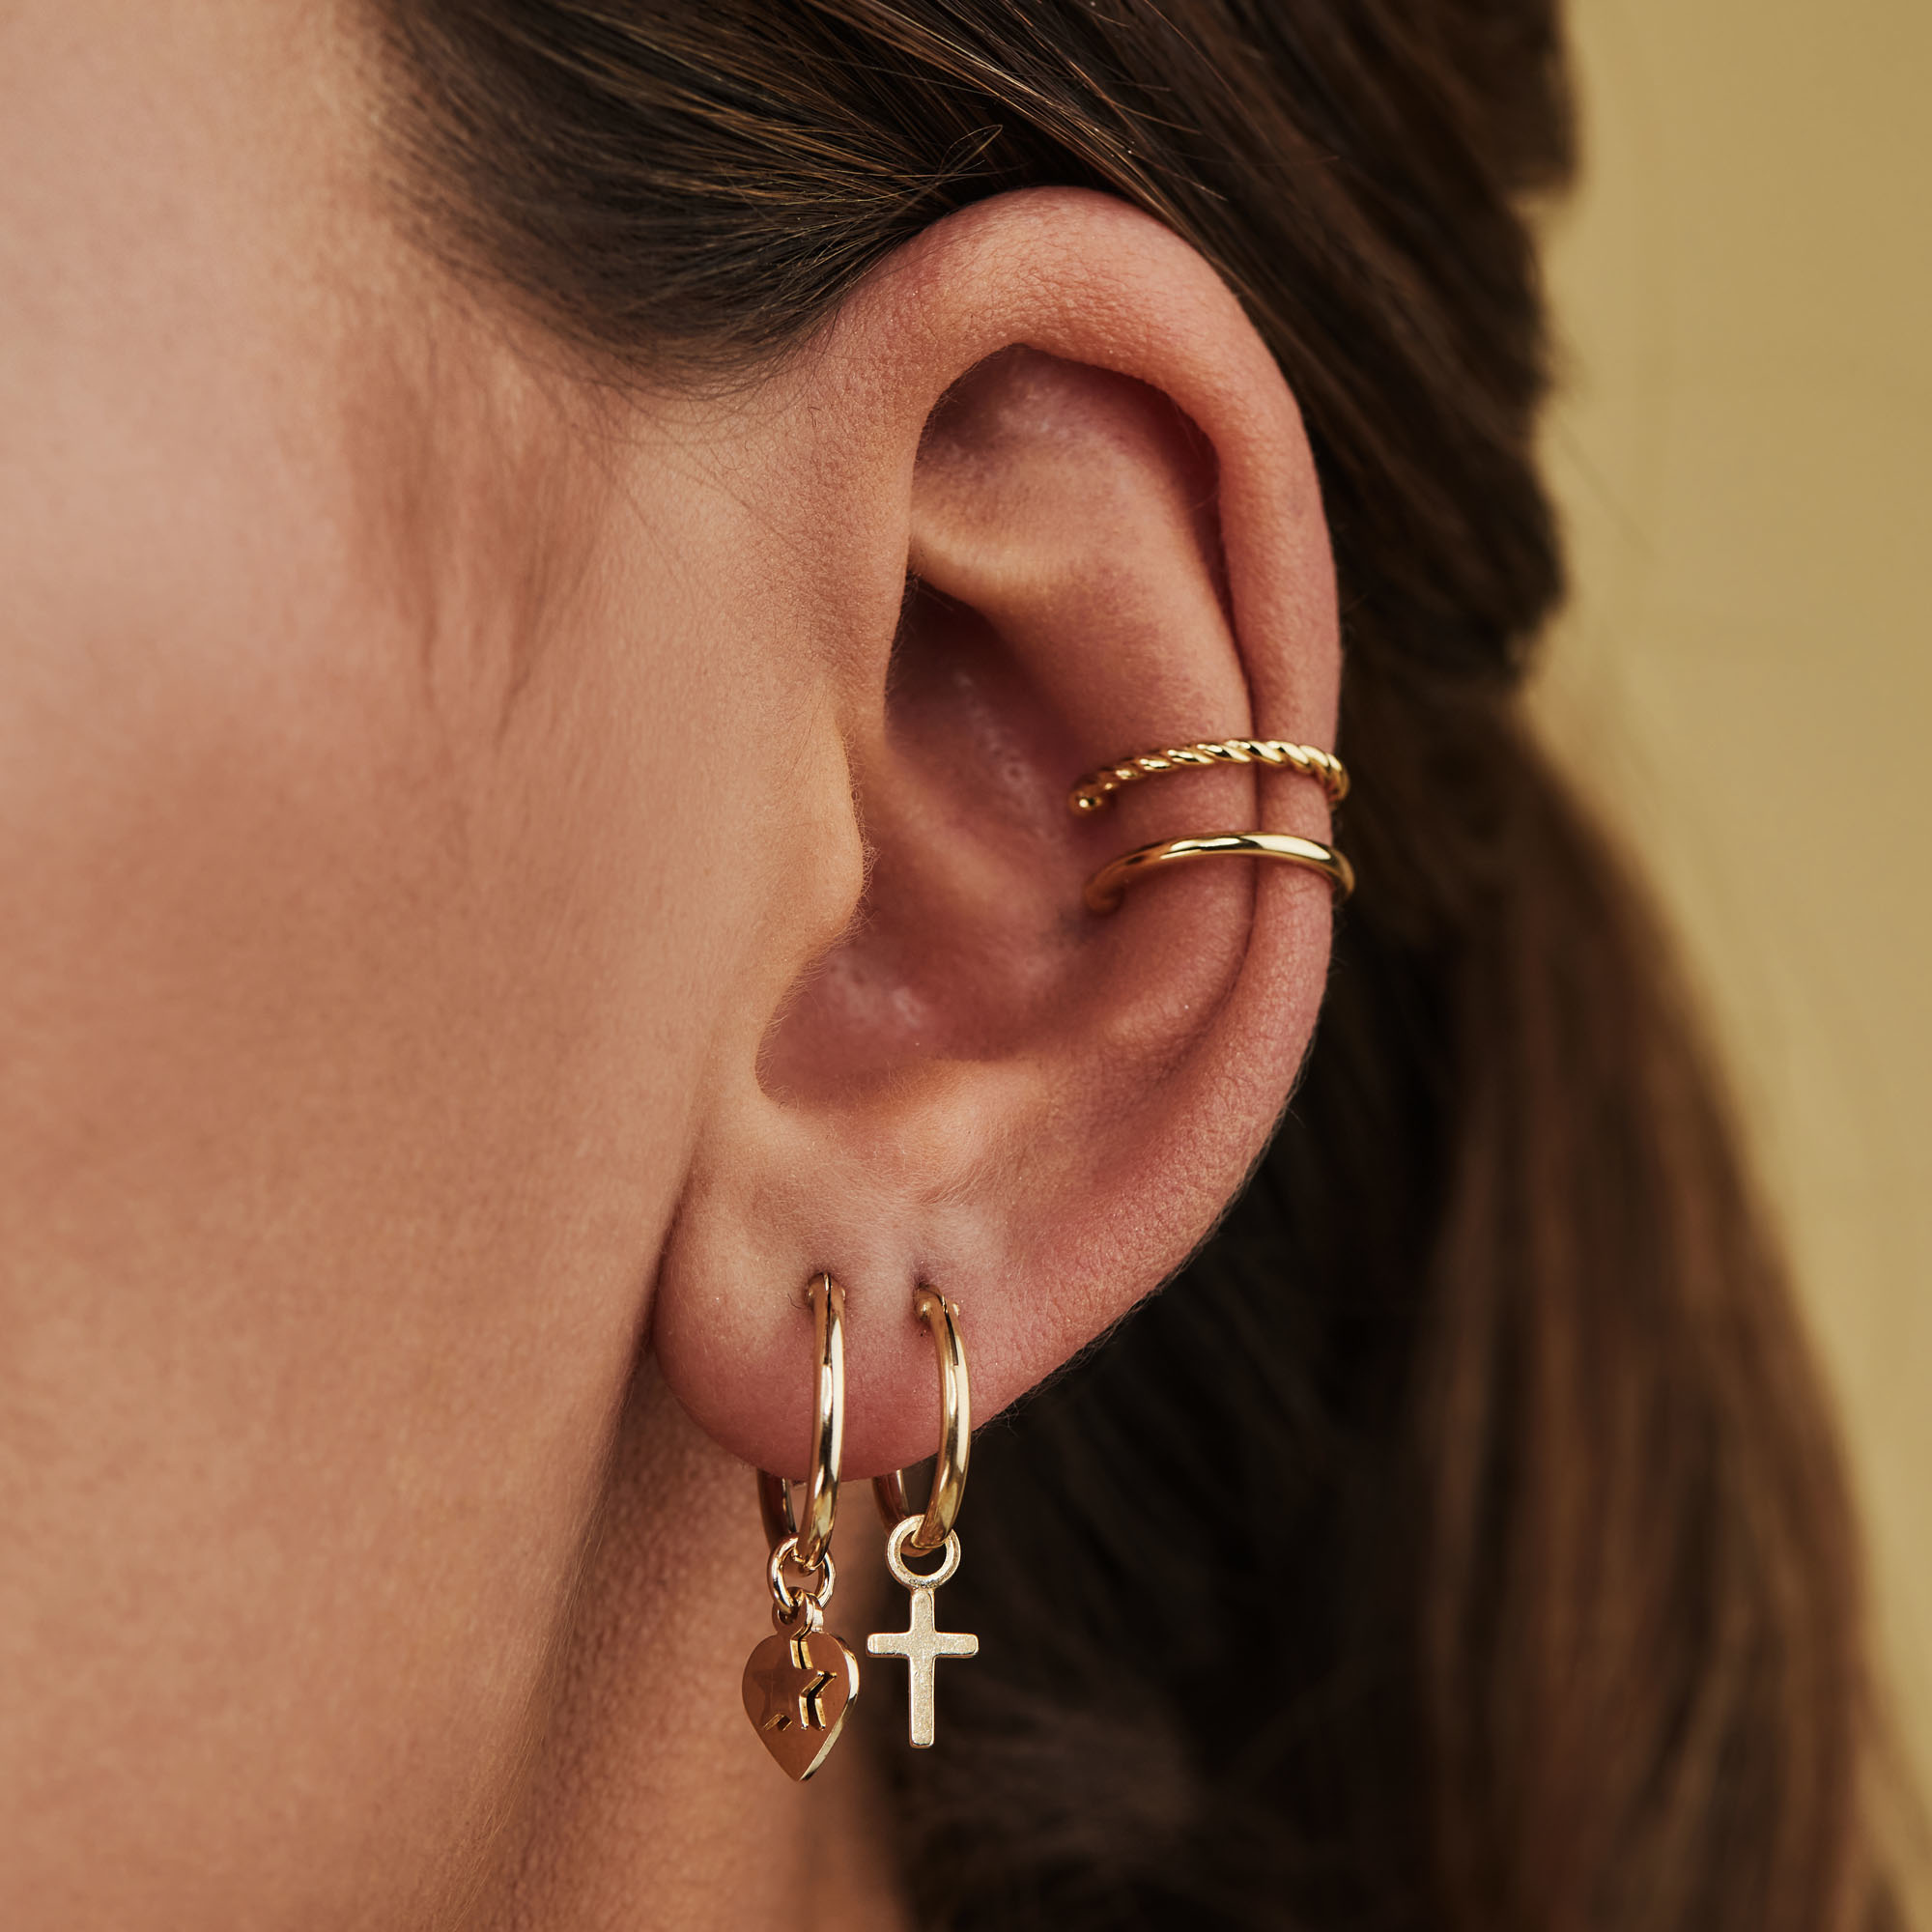 Selected Jewels Julie Théa 925 sterling silver gold colored creoles with crosses